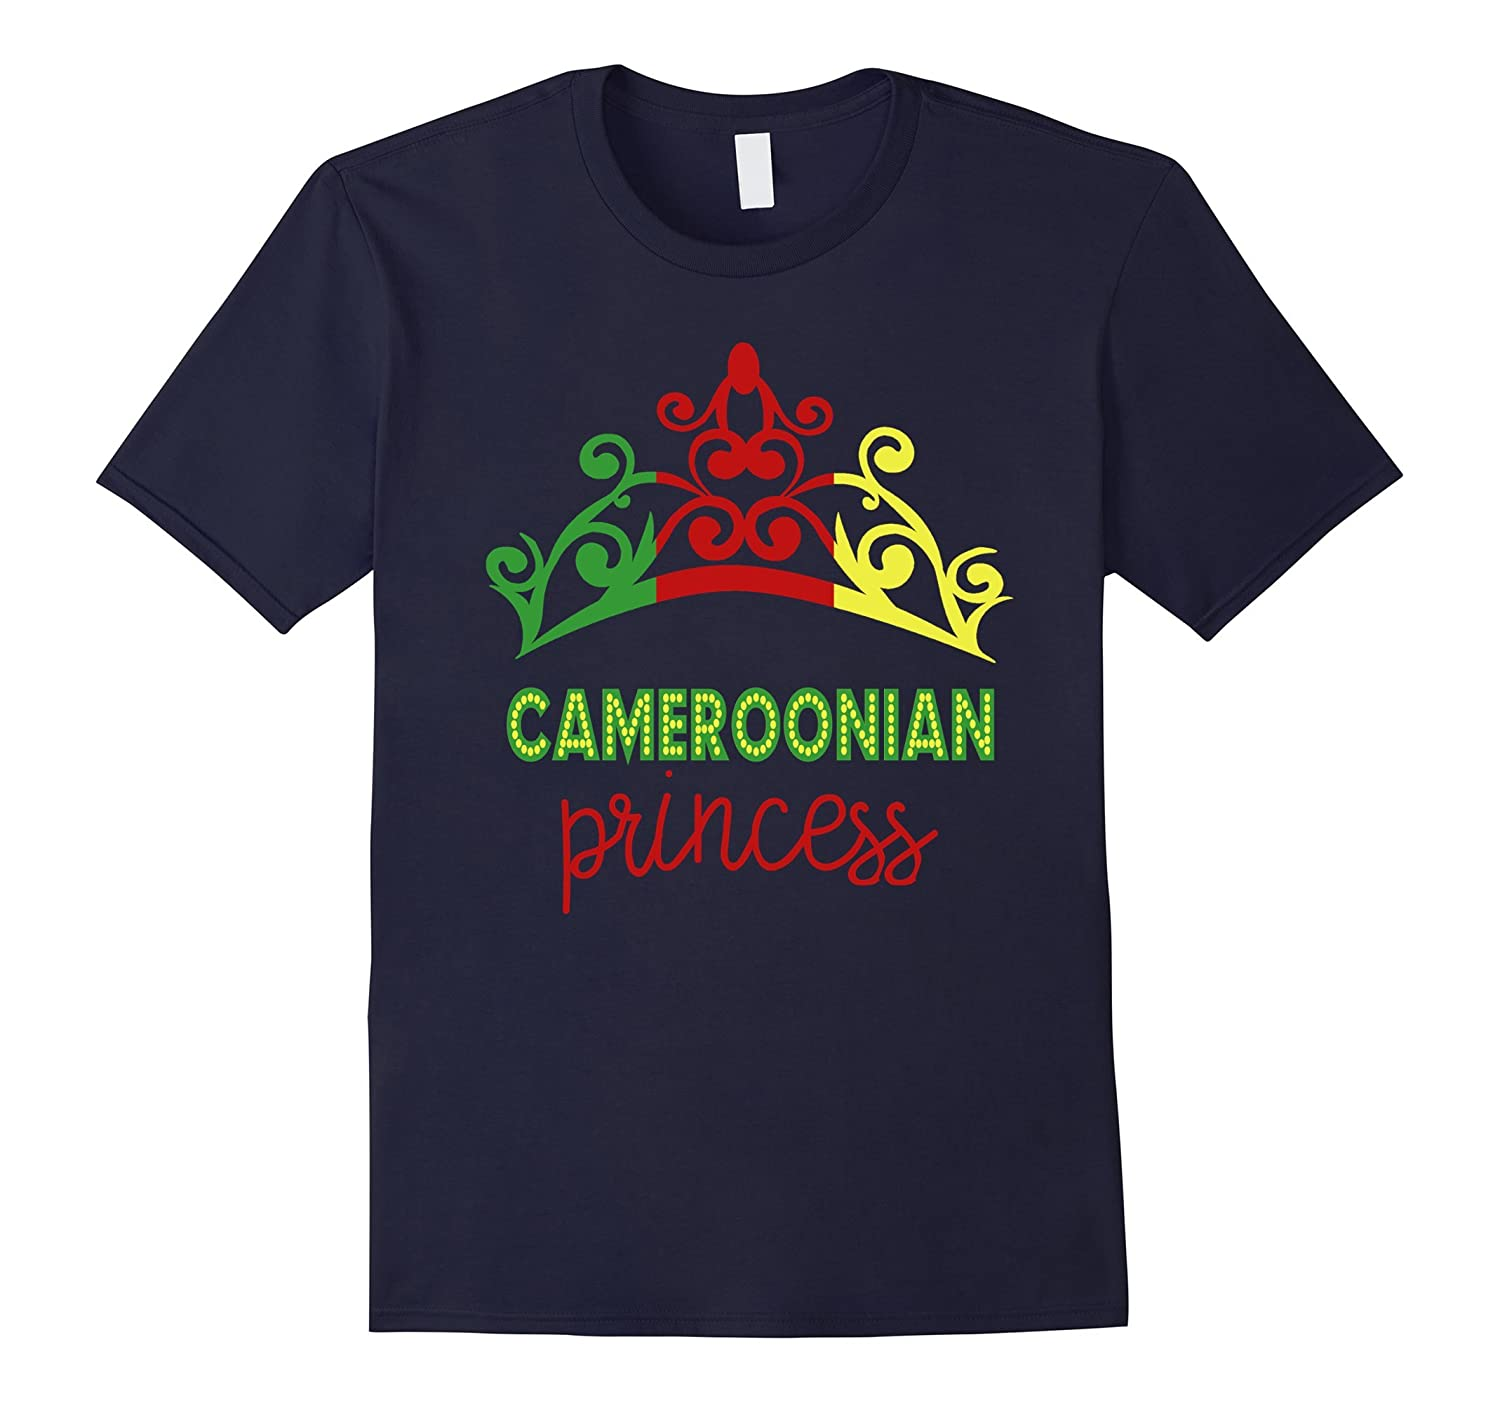 Cameroonian Princess Tiara National Flag T-Shirt-Vaci